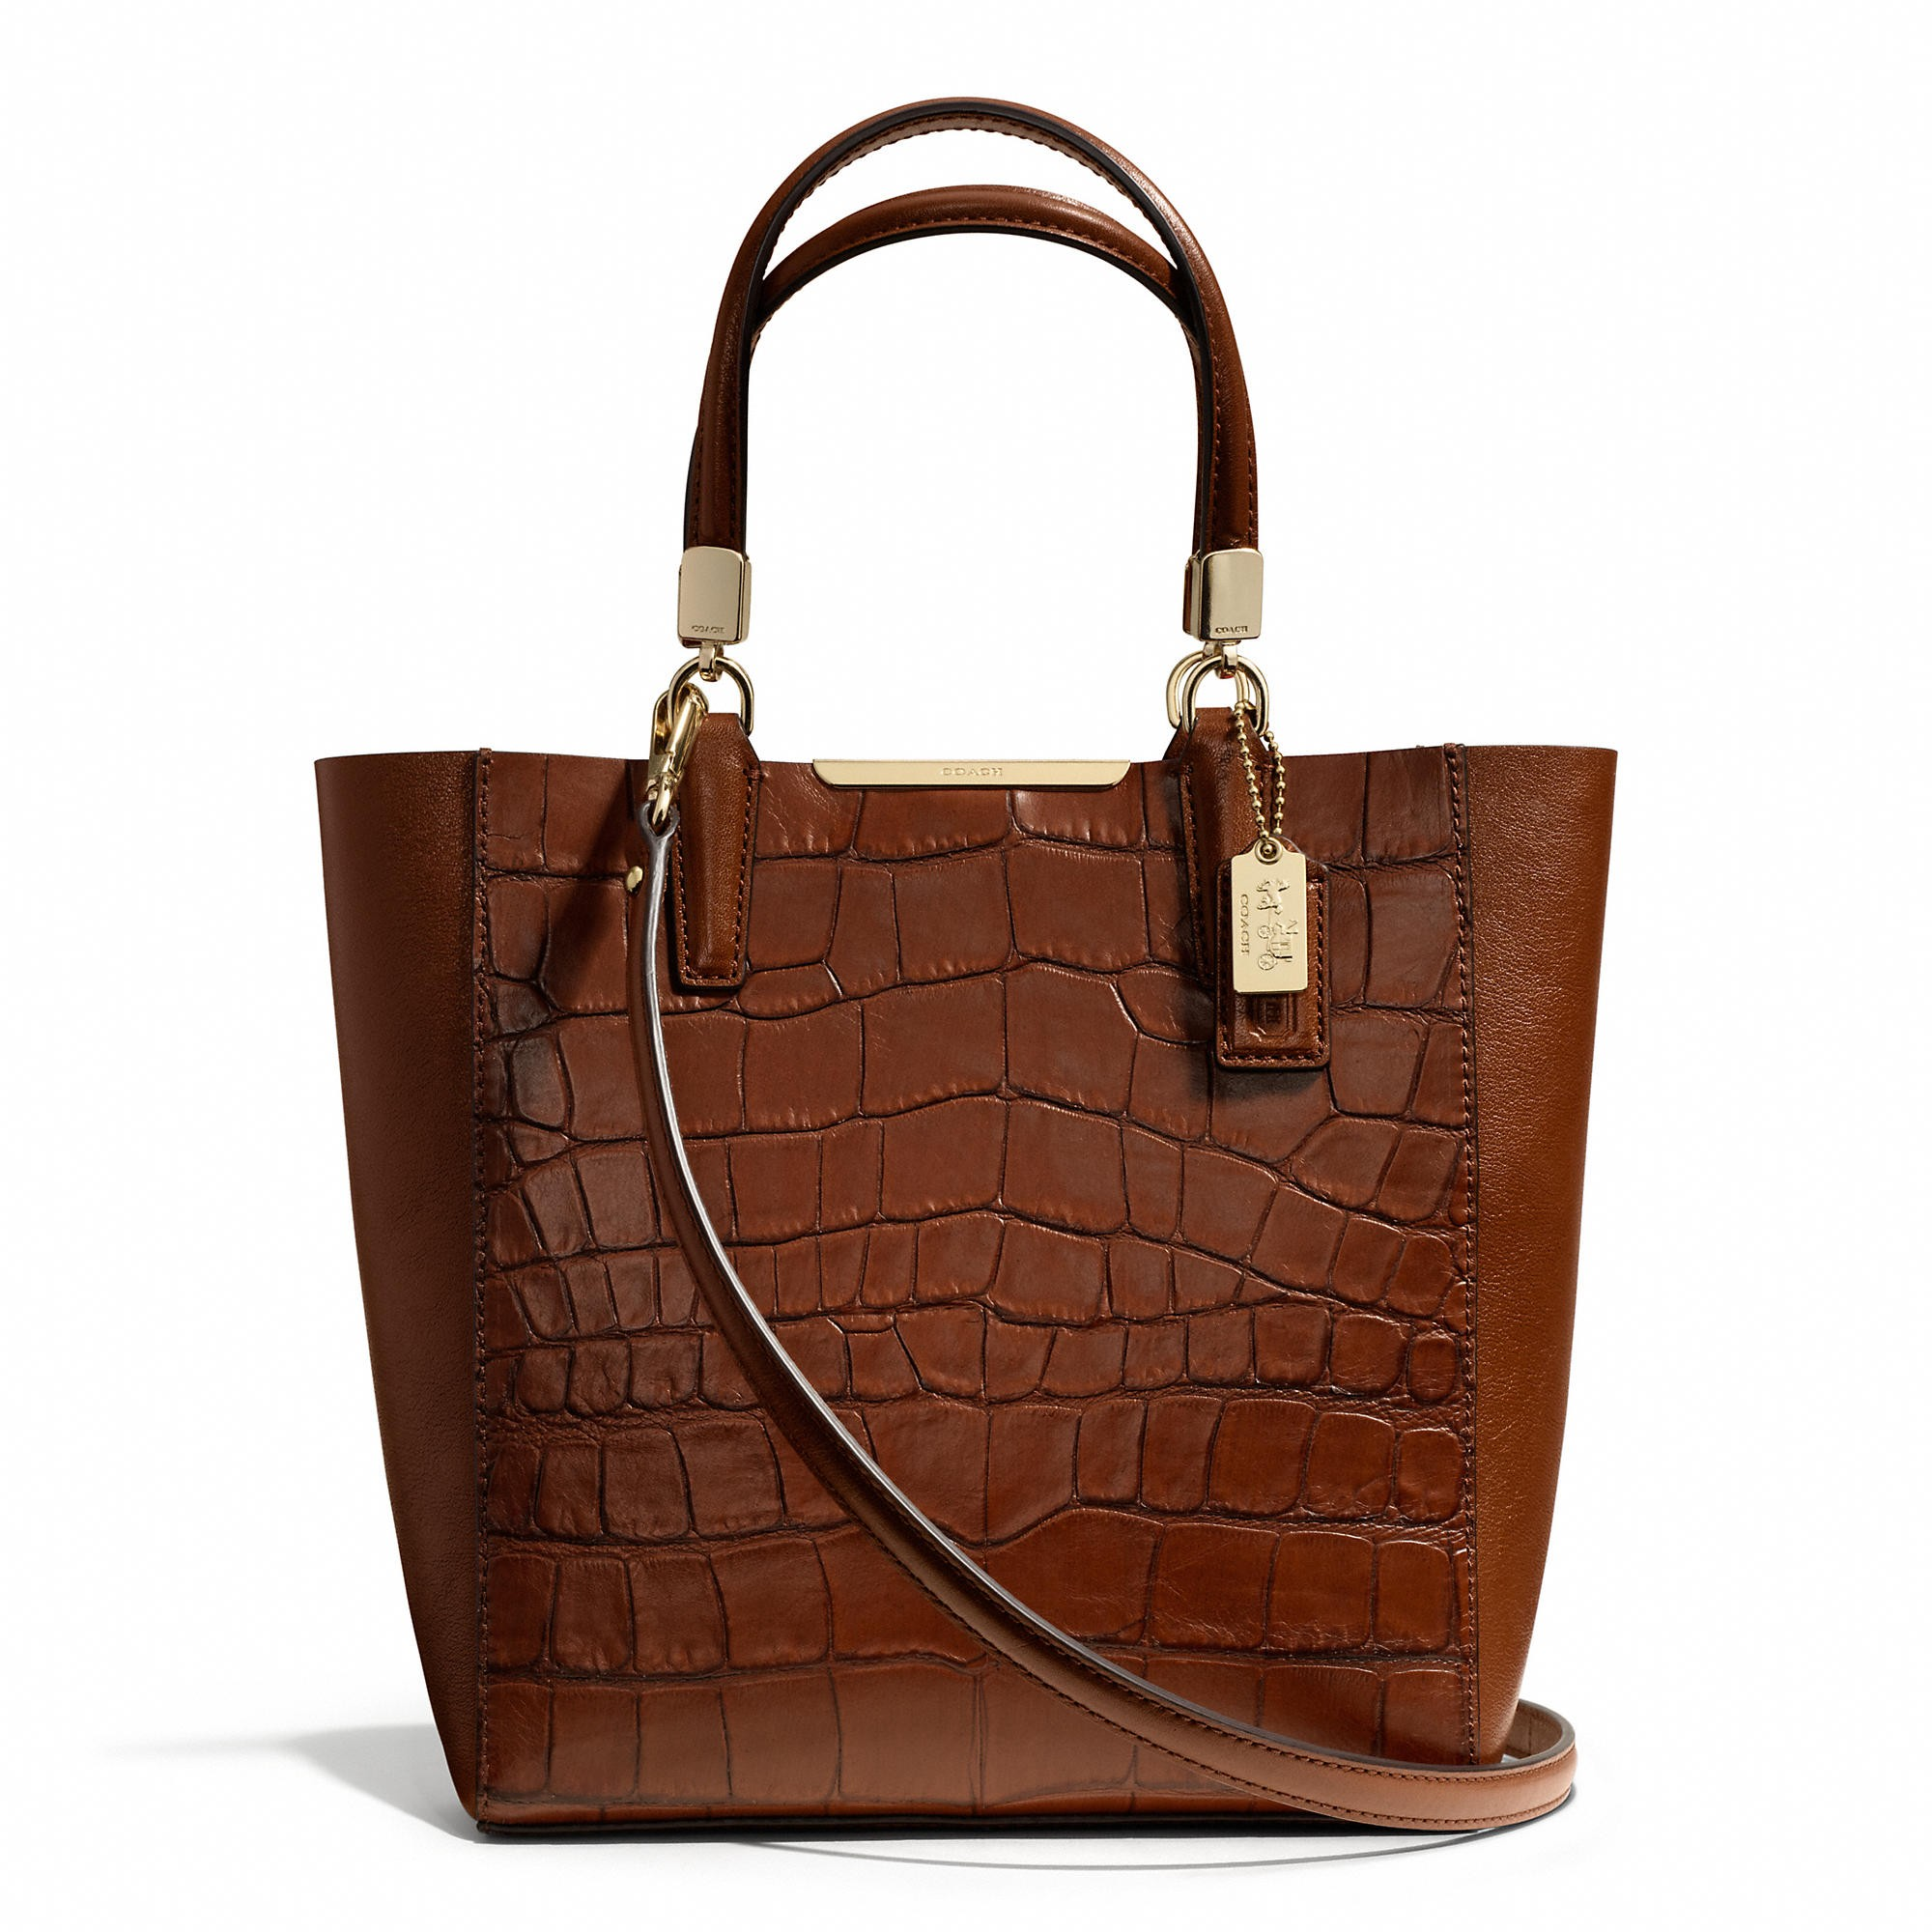 MADISON MINI NORTH/SOUTH BONDED TOTE IN CROC EMBOSSED LEATHER